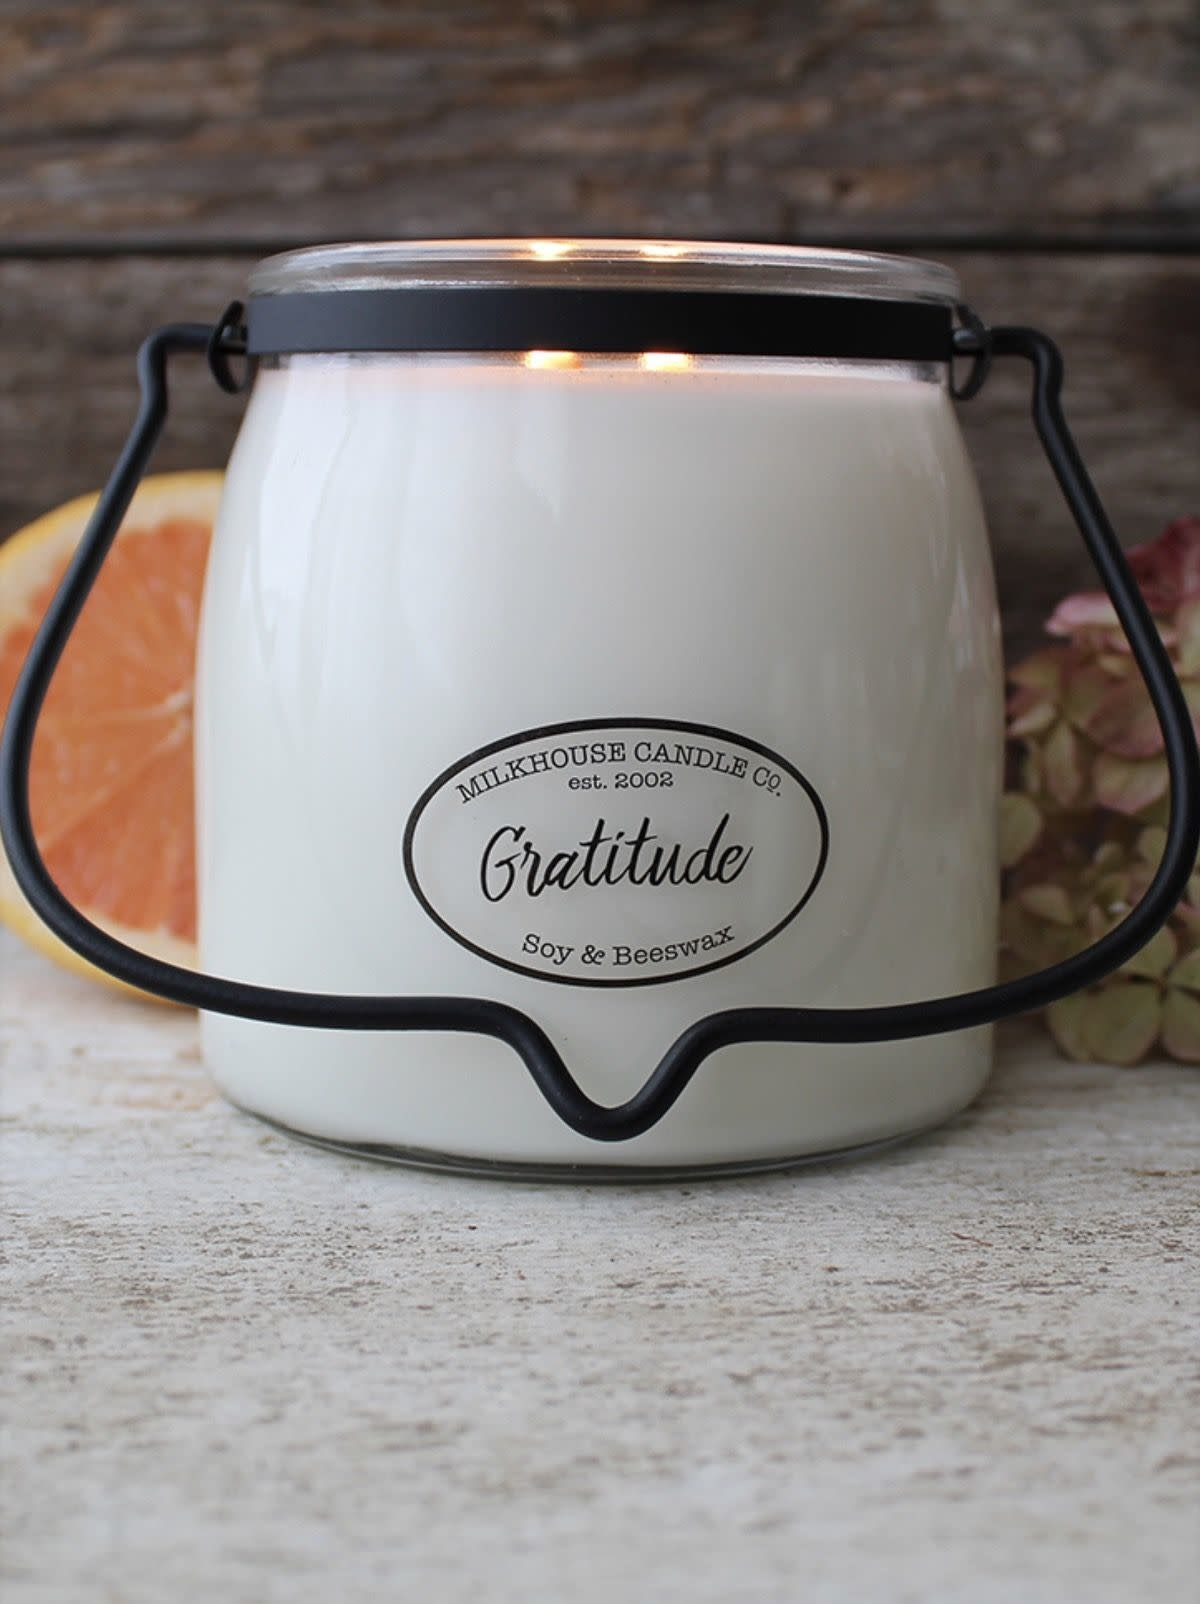 Milkhouse Candles Milkhouse Candle Gratitude 16oz Butter Jar